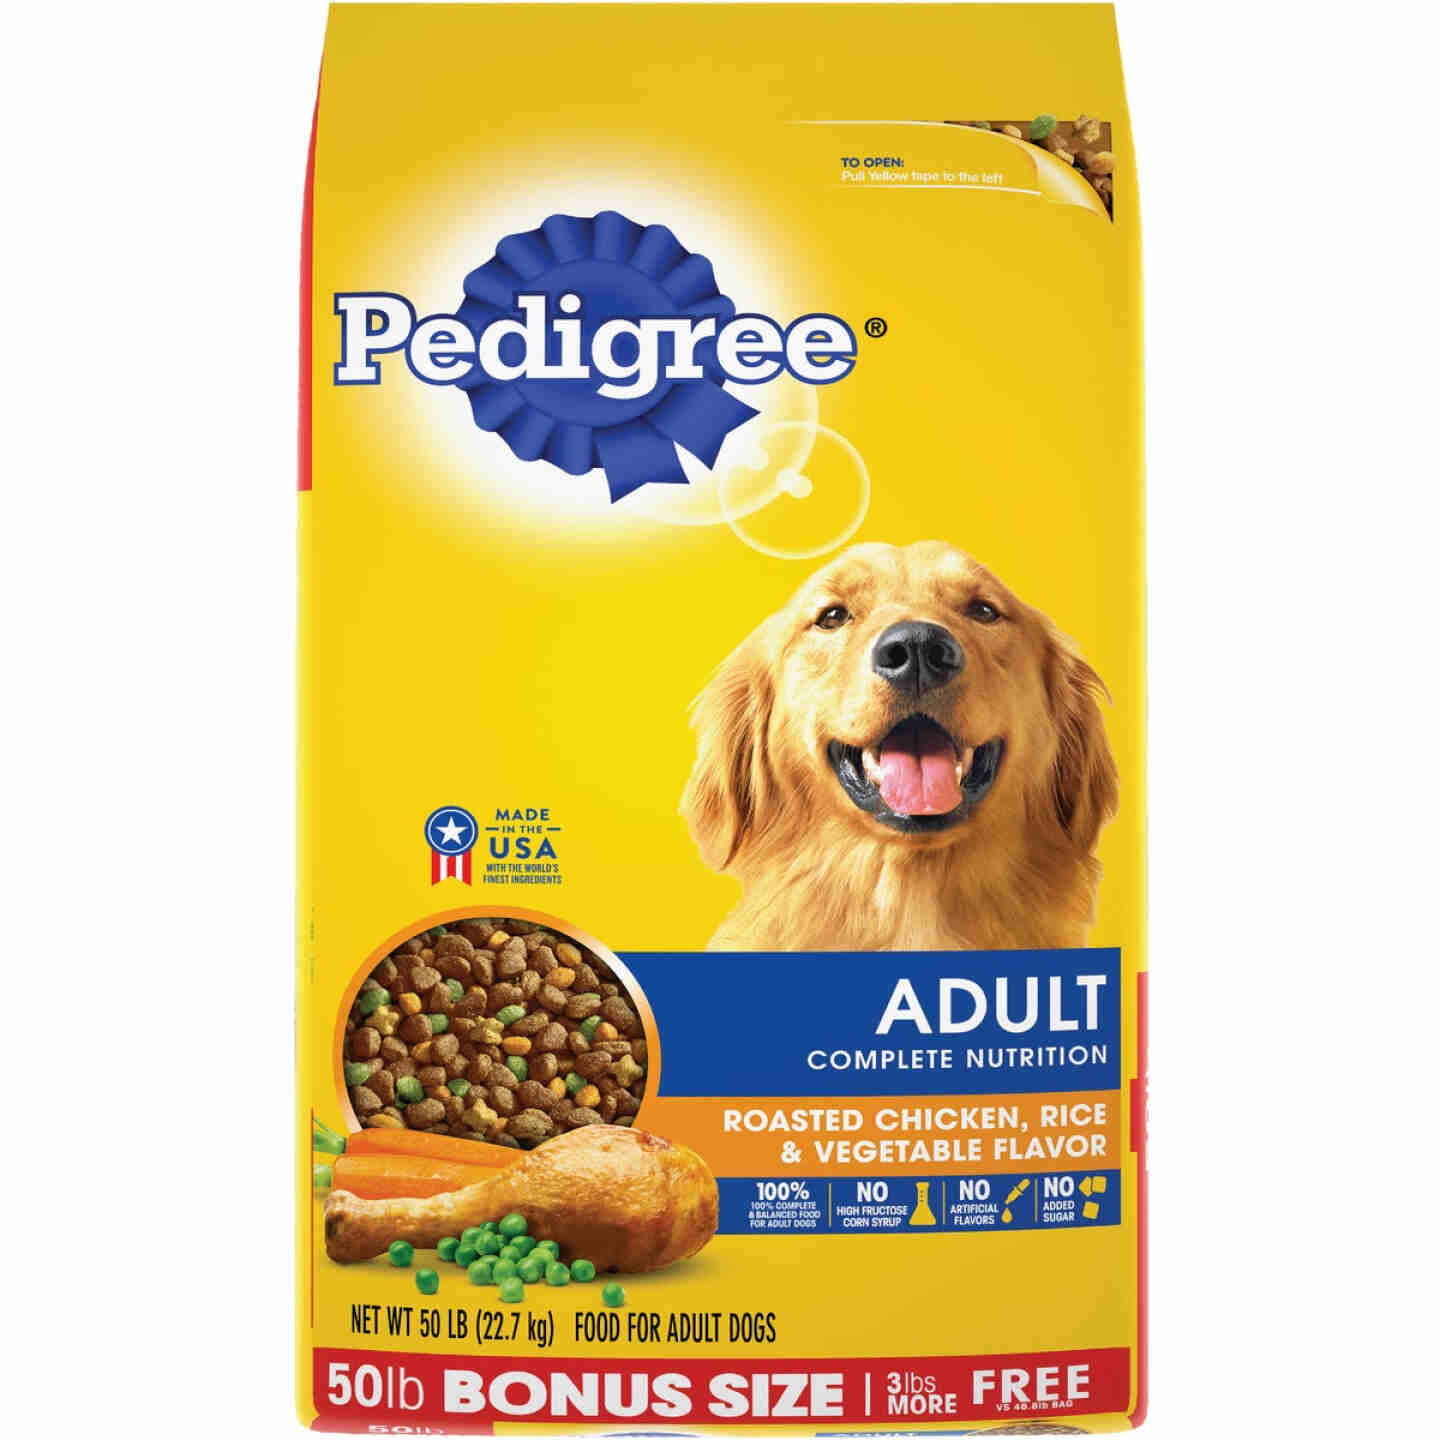 Pedigree Complete Nutrition 50 Lb. Roasted Chicken, Rice, & Vegetable Adult Dry Dog Food Image 1